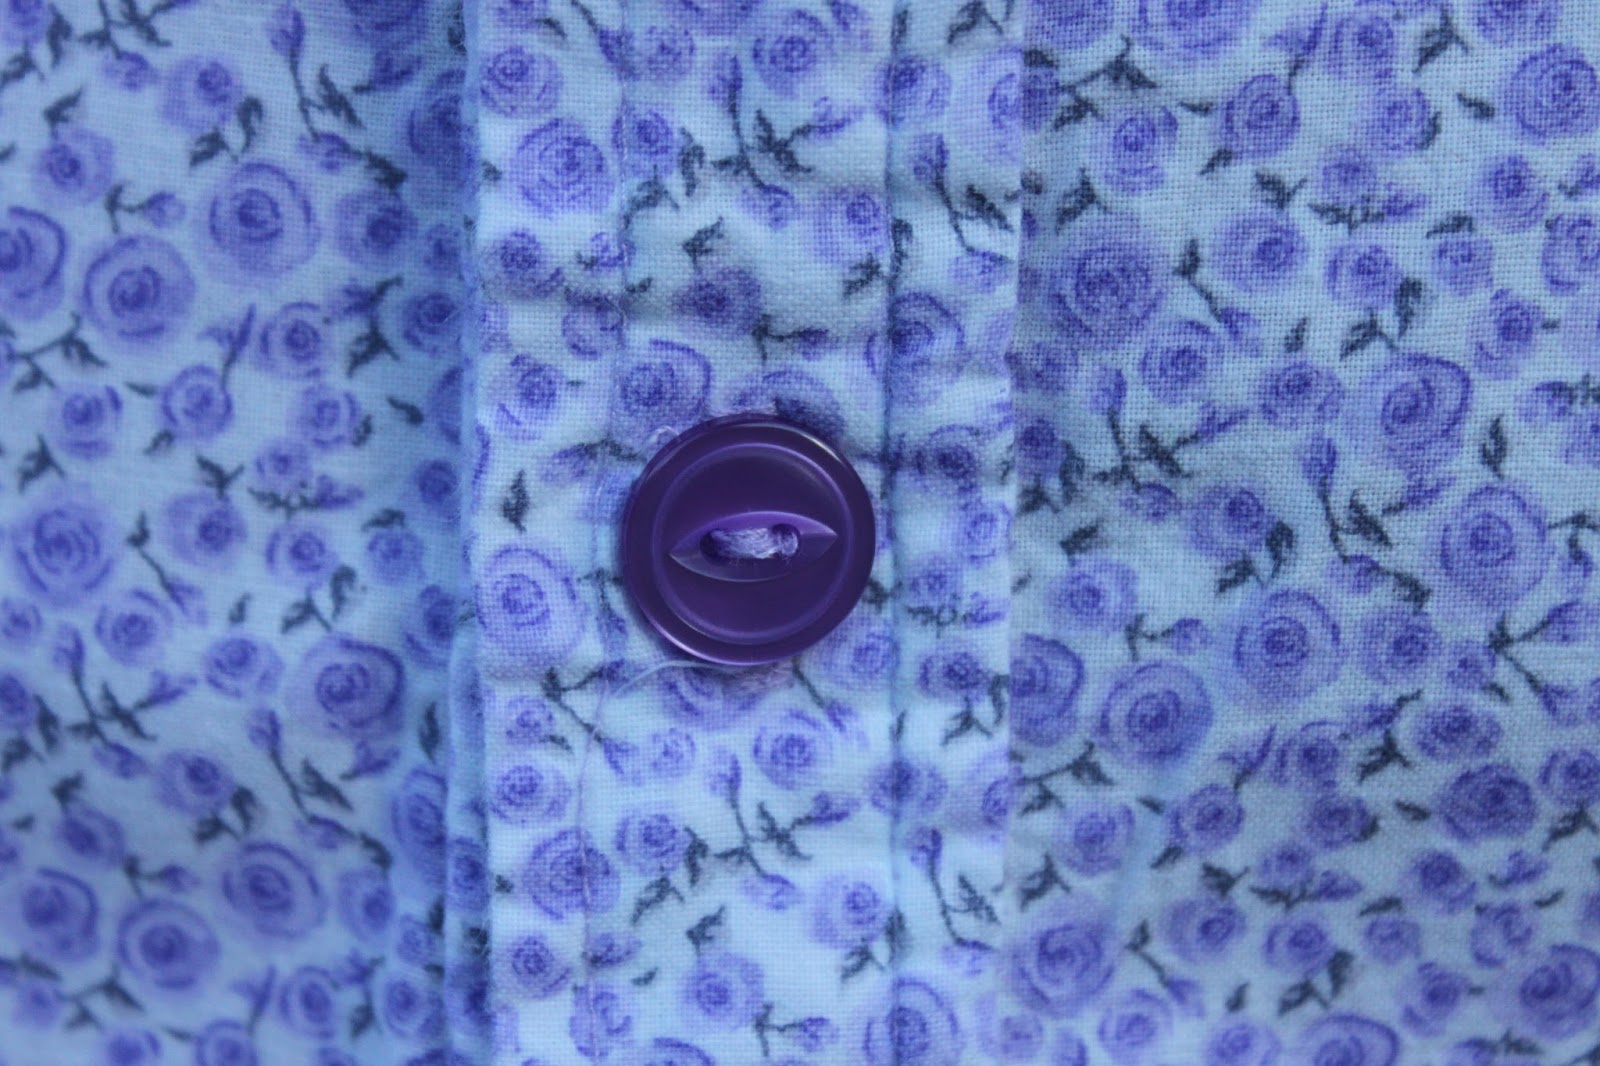 Purple buttons I sewed on